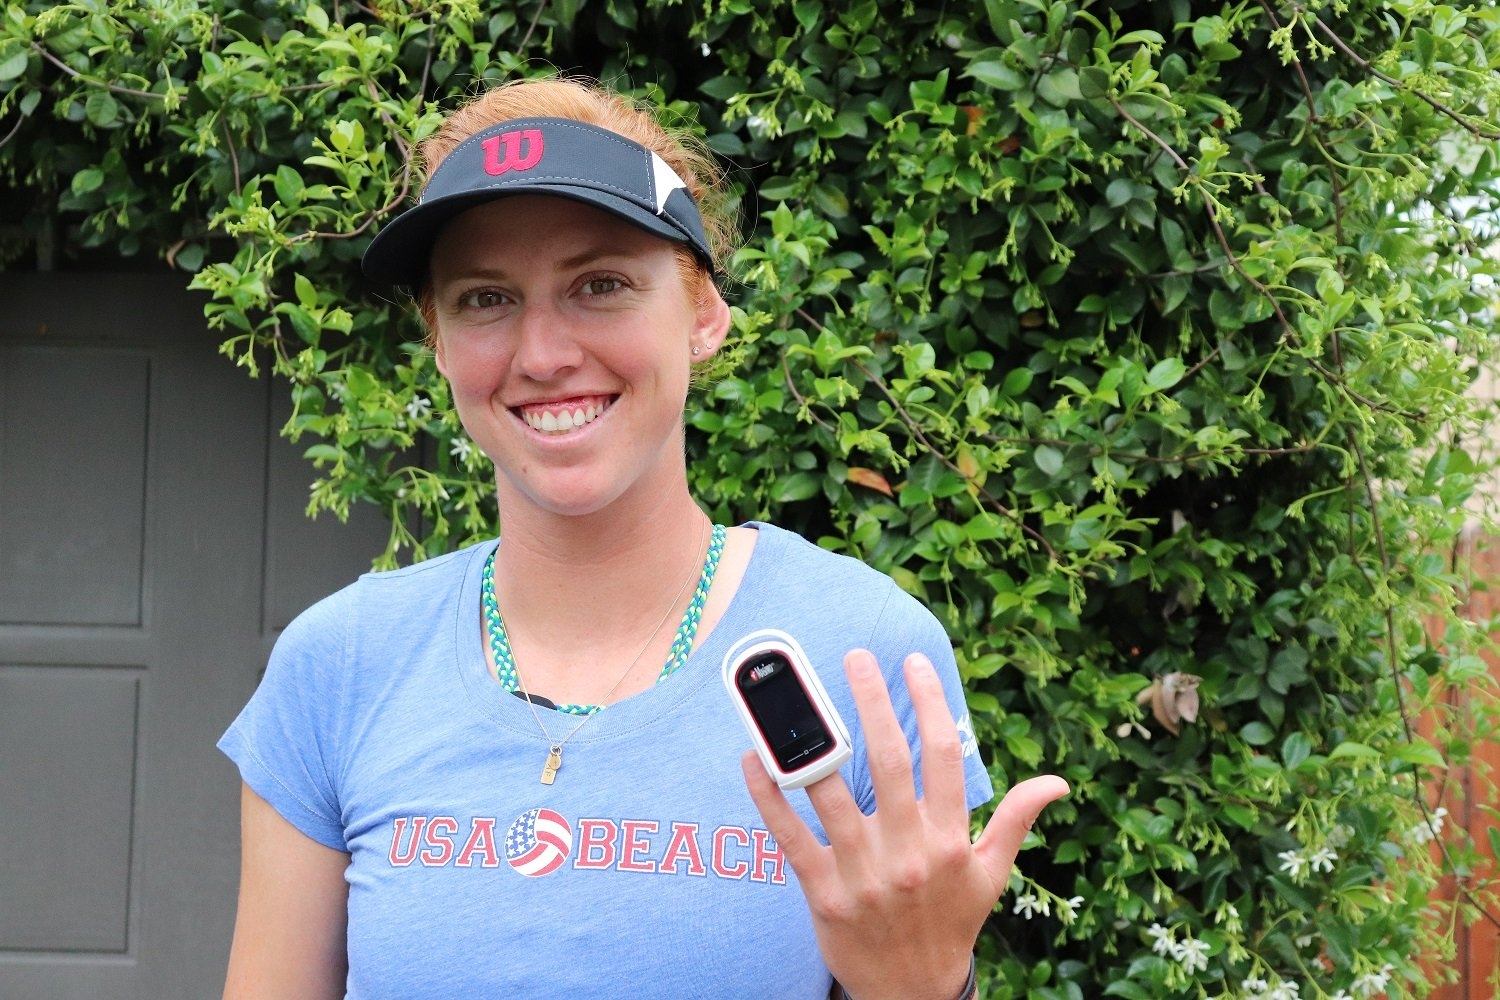 USA's Kelly Claes uses a device to keep track of several body rates before, during and after physical activities (Photocredit: Kelly Claes)